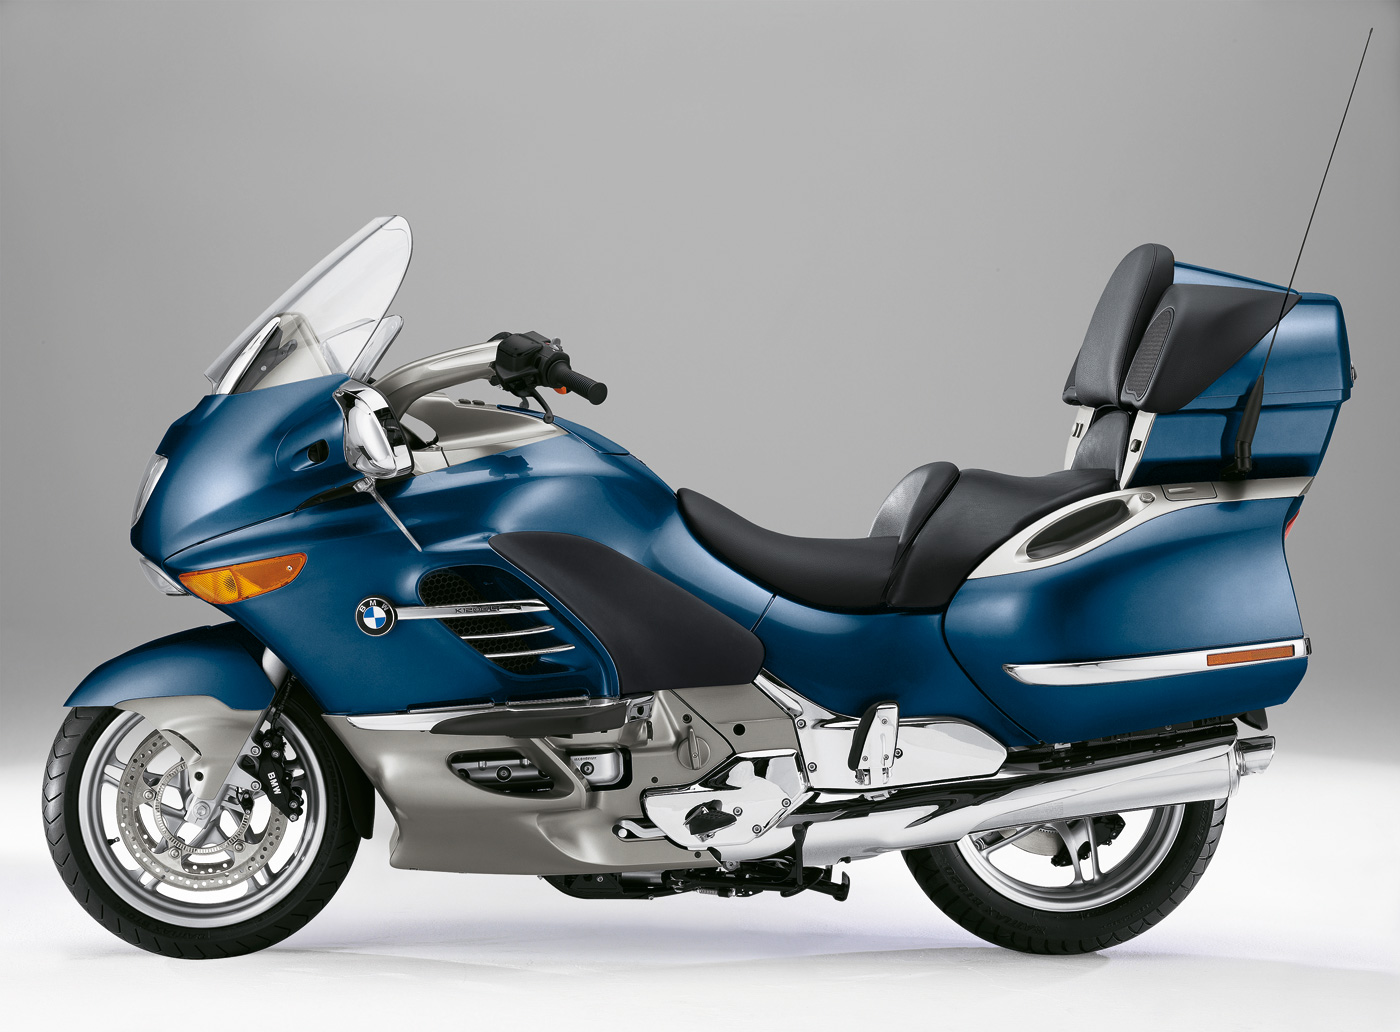 2002 BMW K 1200 LT Sport Touring Motorcycle From De Pere